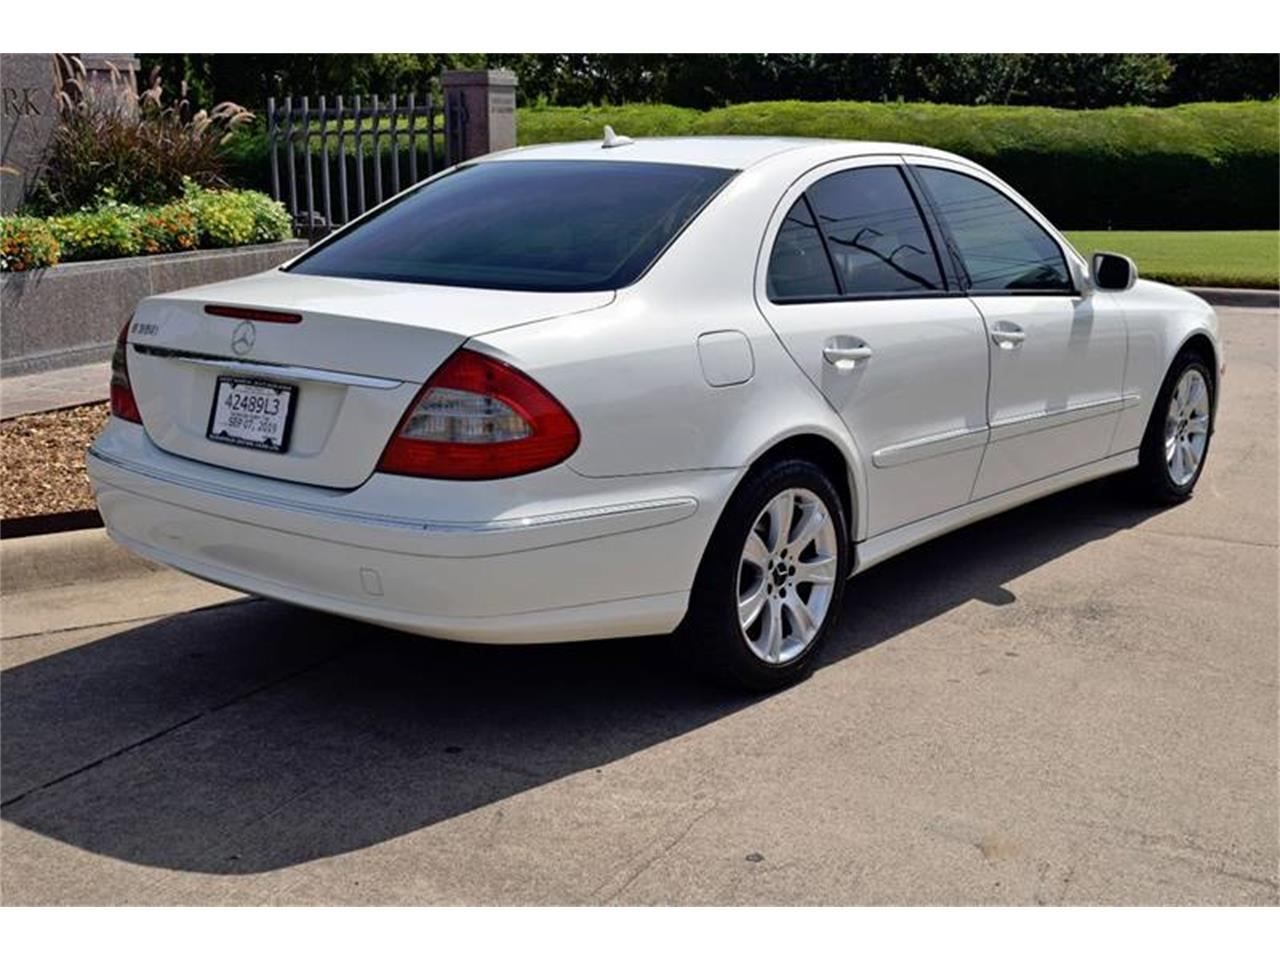 2009 Mercedes-Benz E-Class for sale in Fort Worth, TX – photo 7